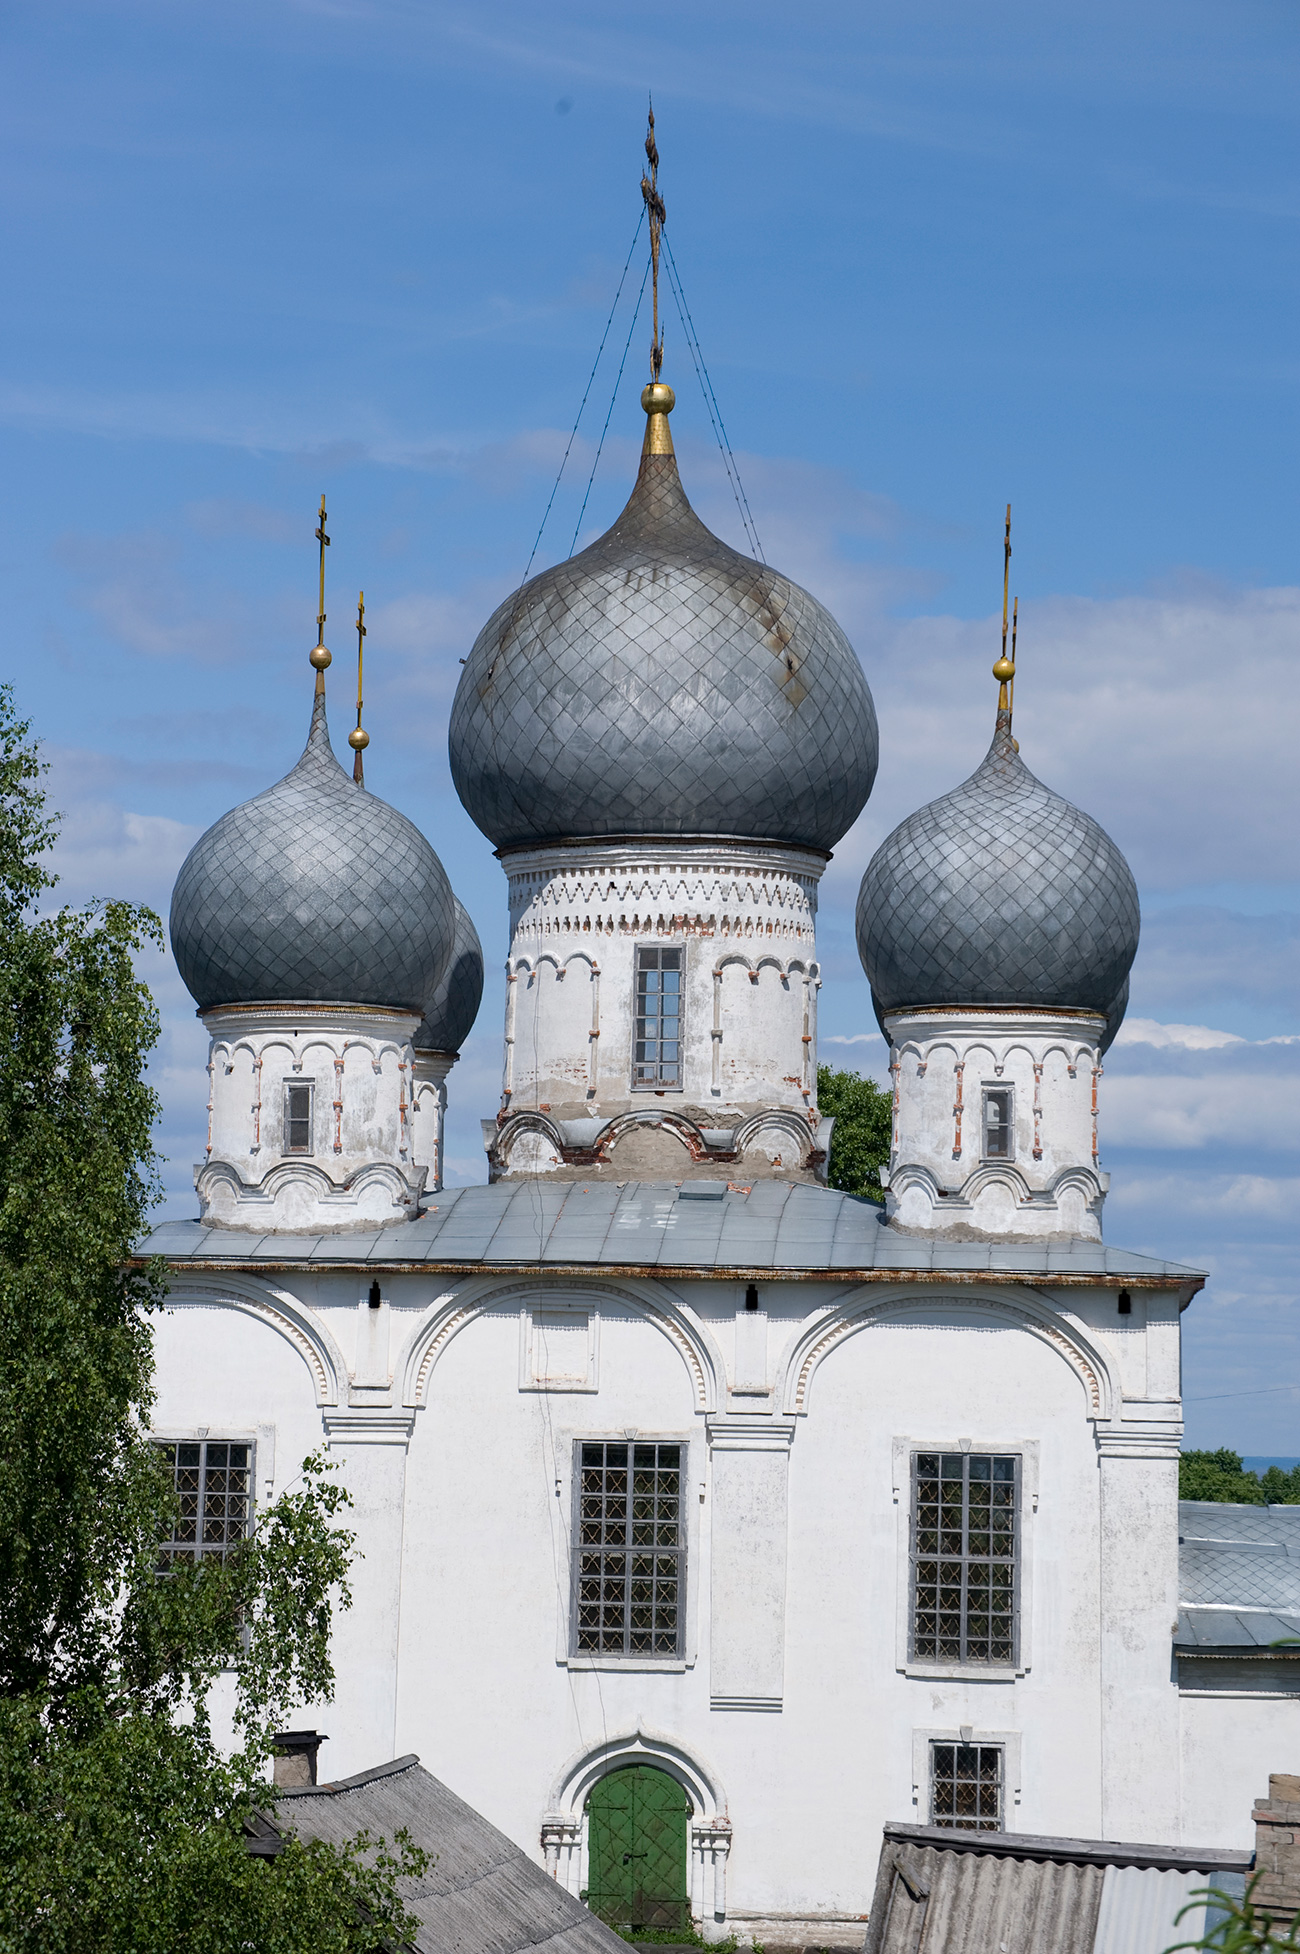 Cathedral of Transfiguration, south facade from south rampart of kremlin. June 9, 2010. / William Brumfield